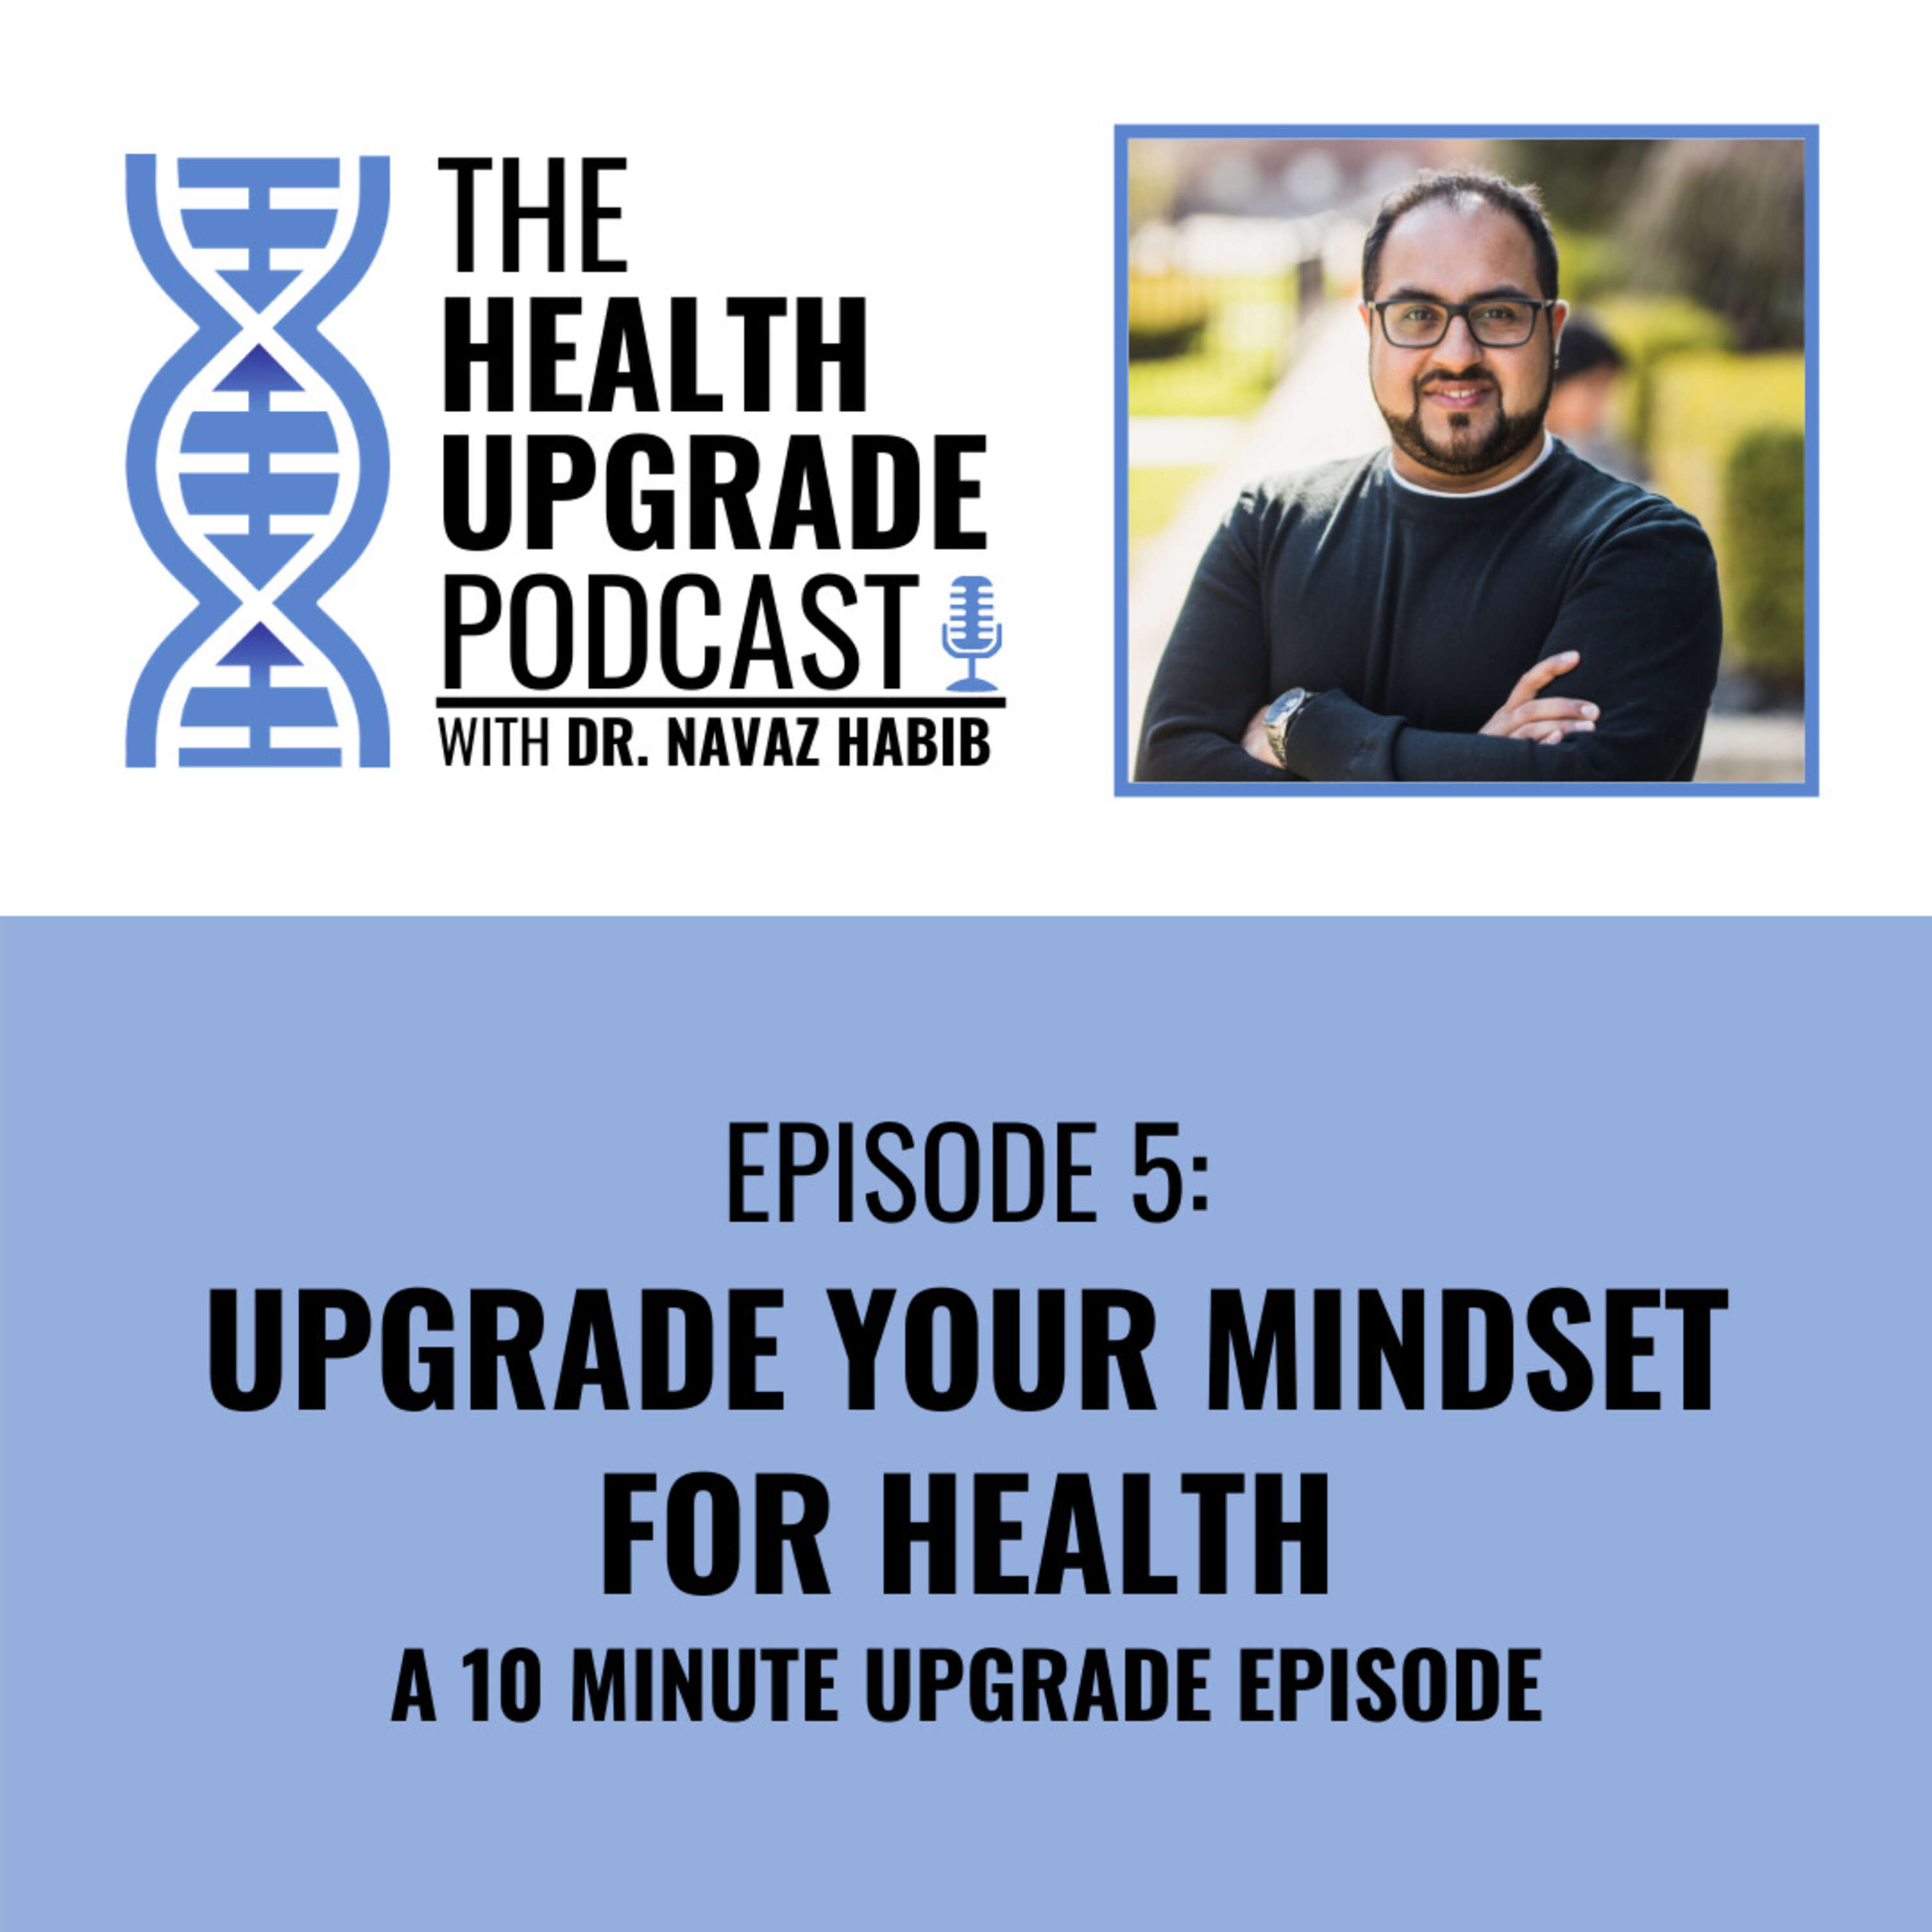 Upgrade your mindset for health